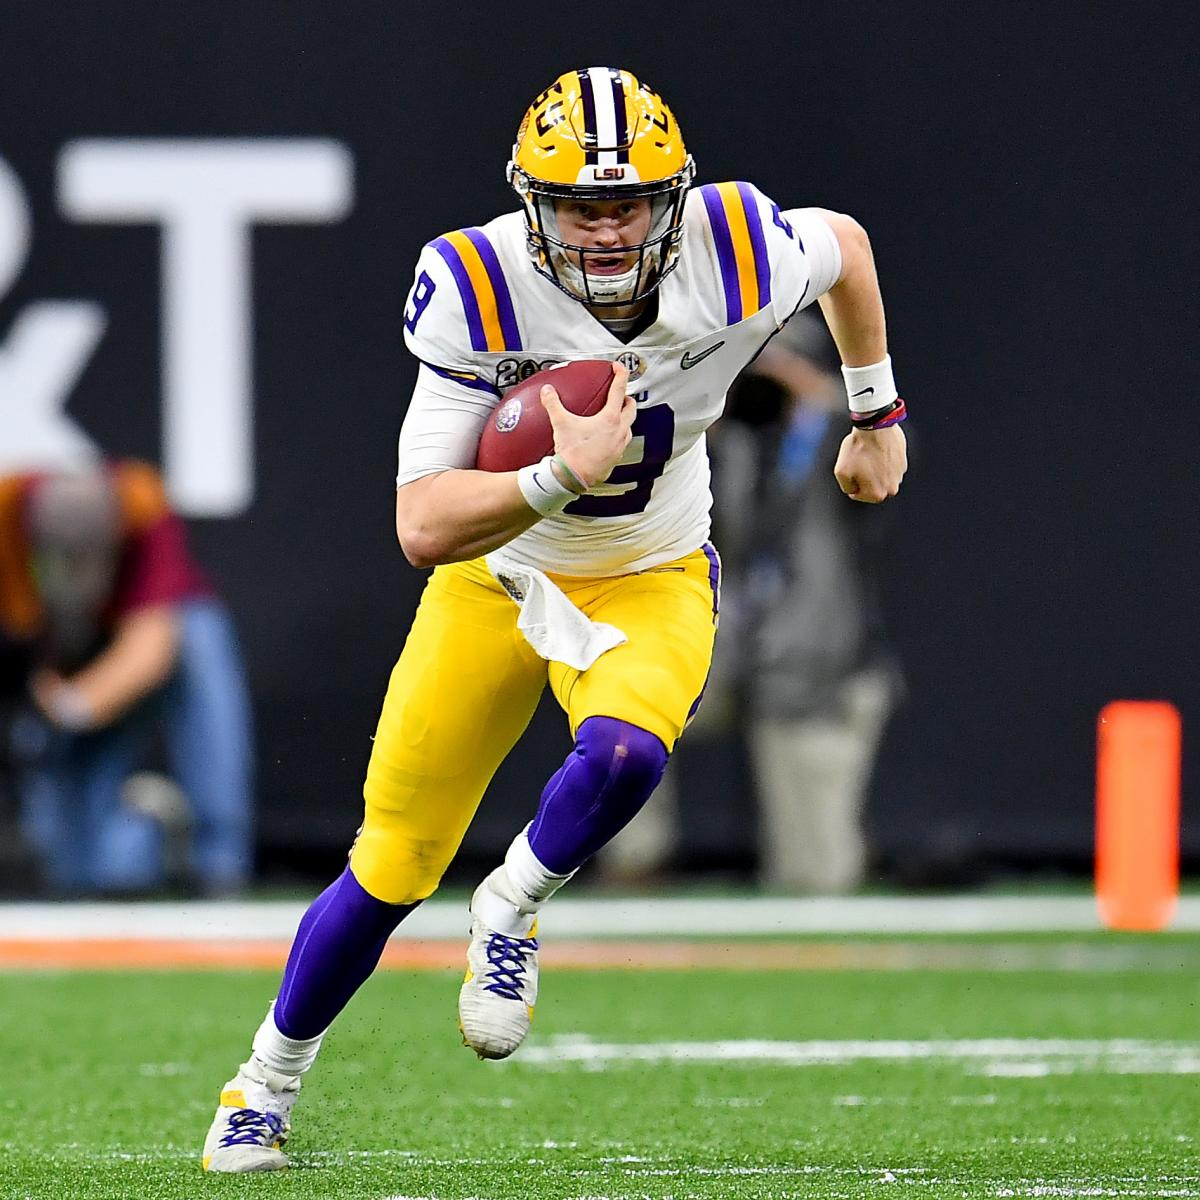 LSU 'Unlocked' Joe Burrow's 'Superpower,' Says NFL Network's Daniel Jeremiah